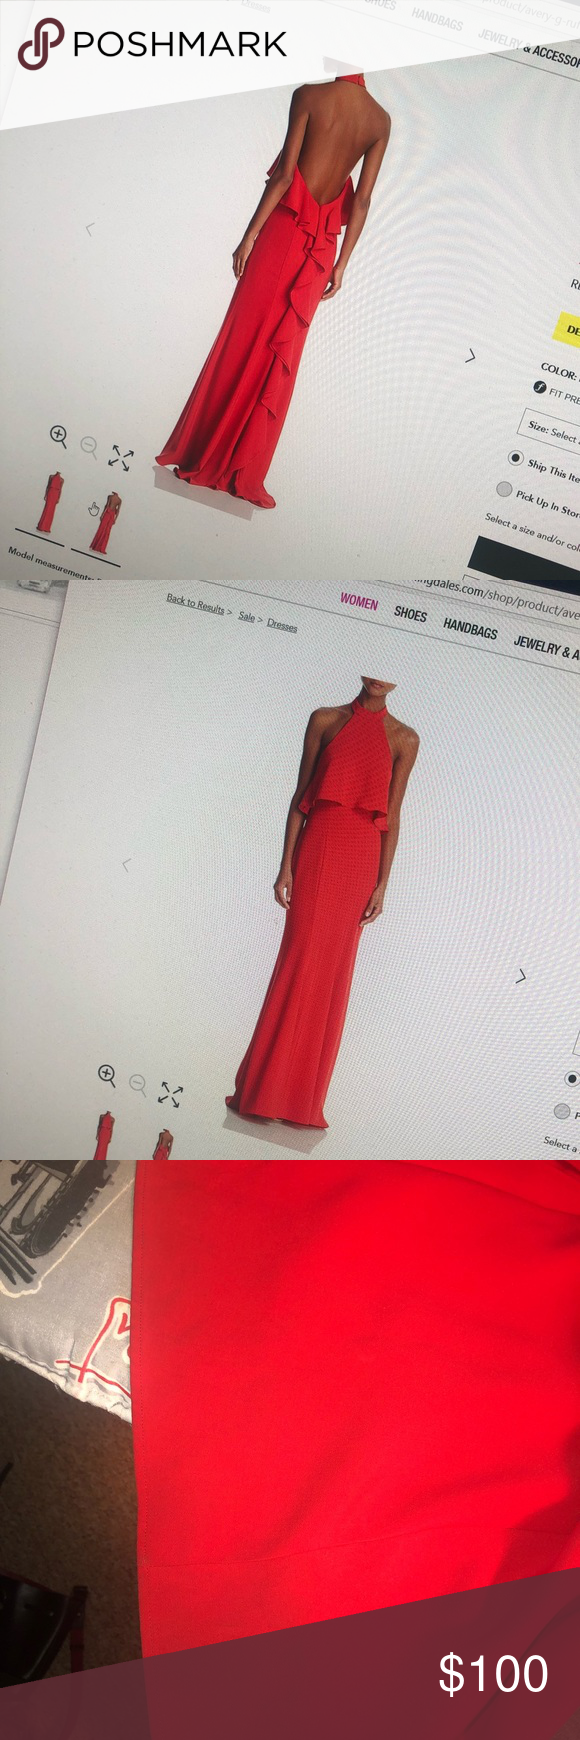 Avery G Bloomingdales Red Formal Gown Red Formal Gown Formal Gowns Bloomingdale Dresses [ 1740 x 580 Pixel ]